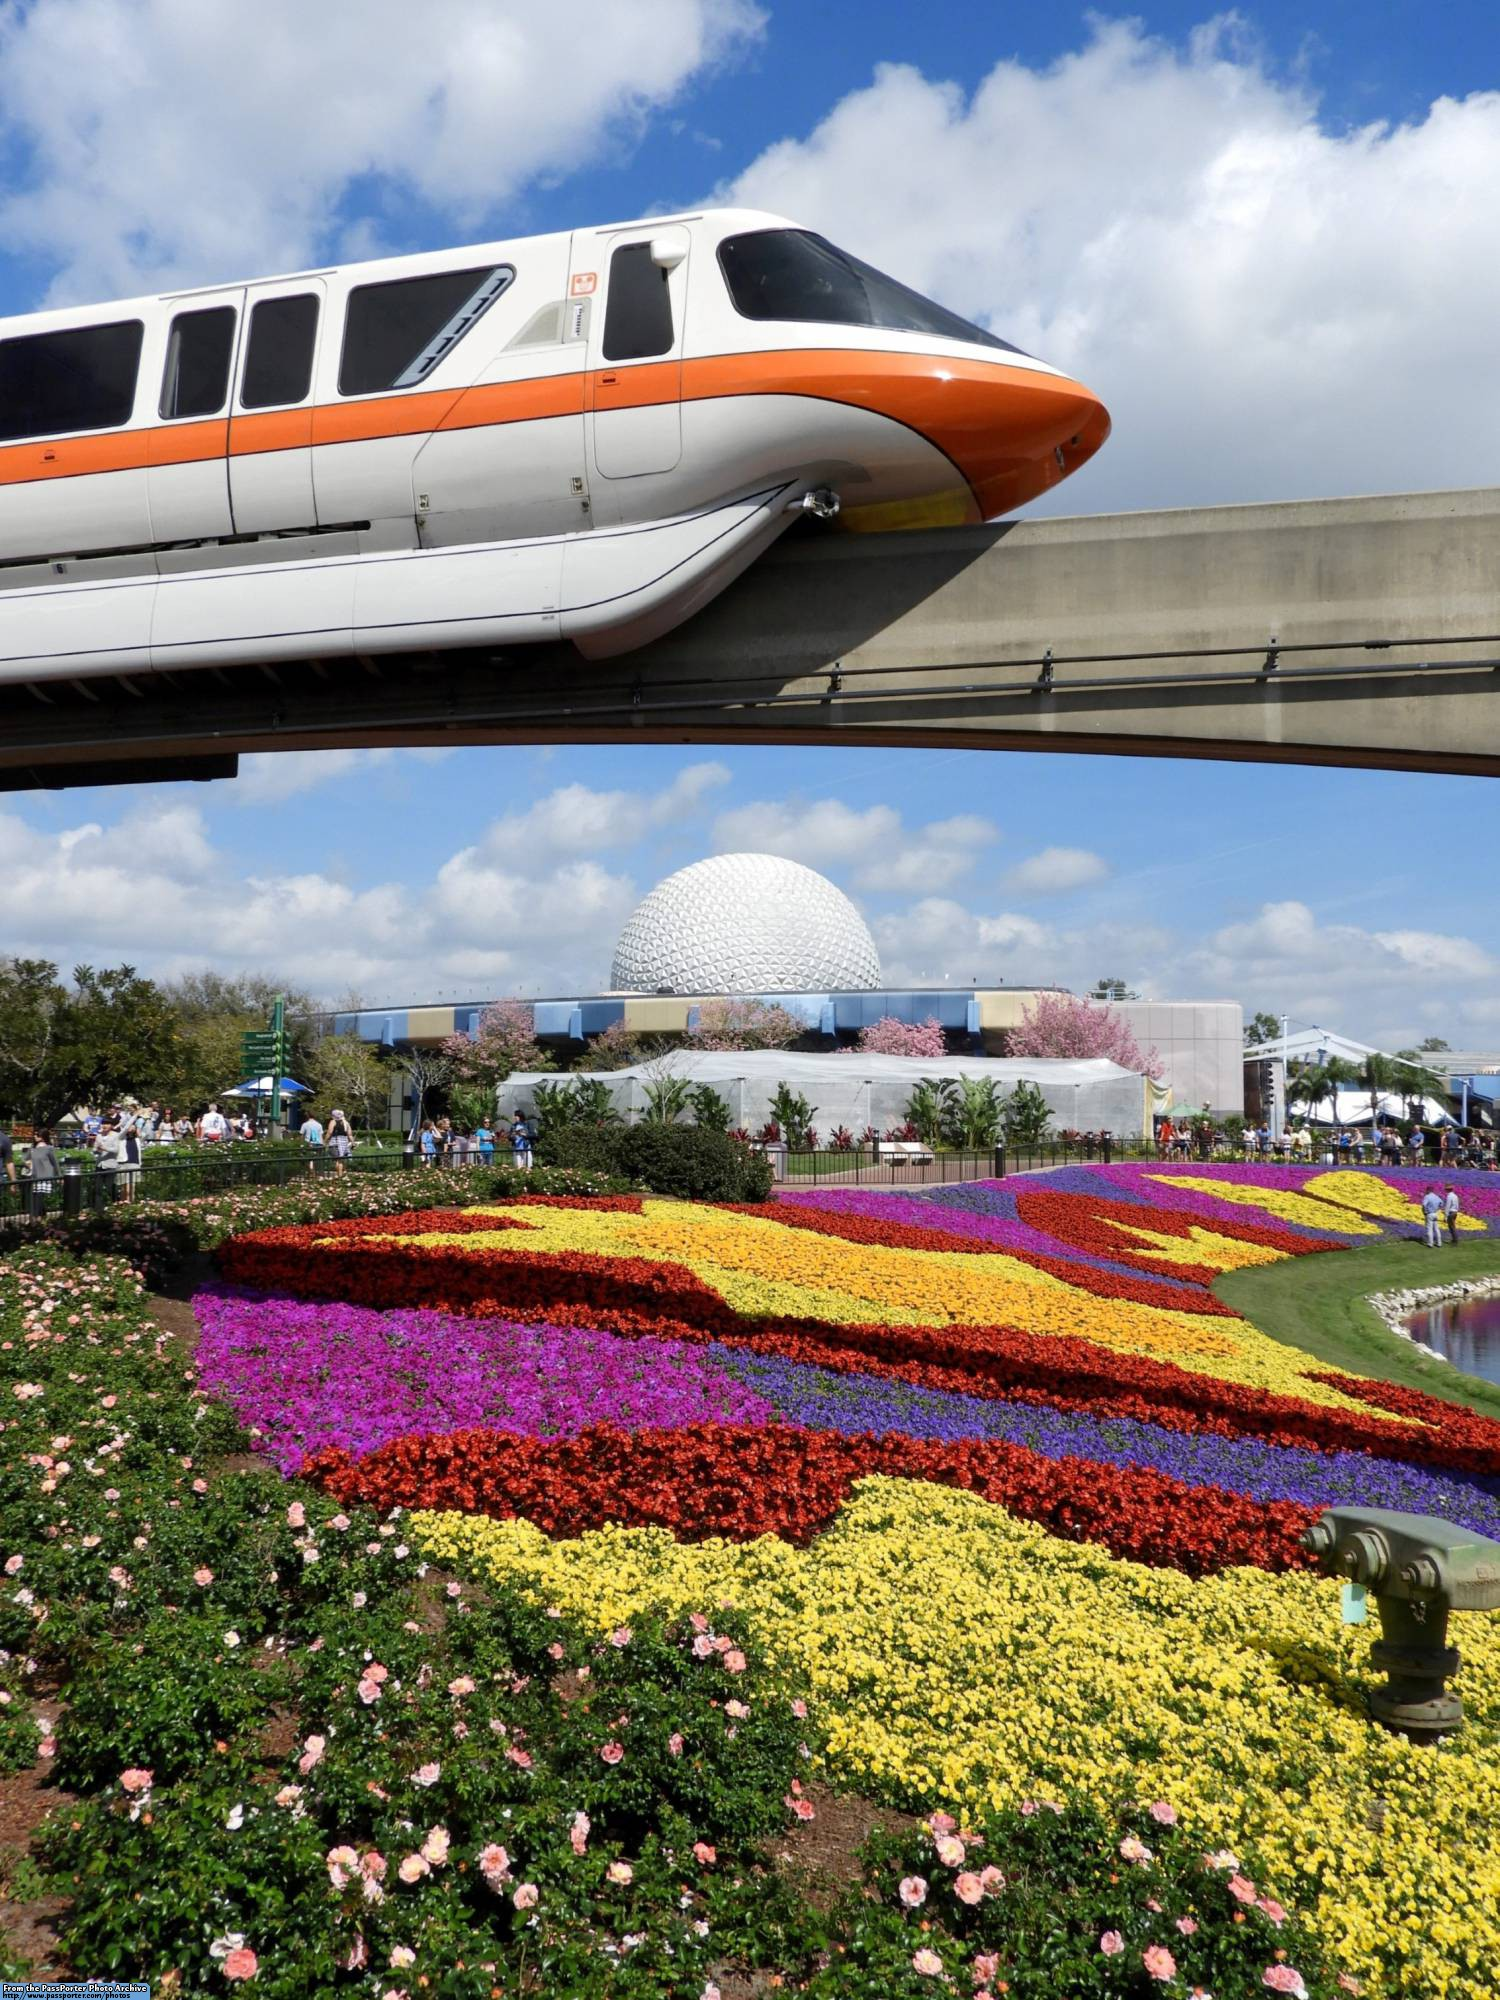 Enjoy exploring the 2017 Epcot Flower and Garden Festival | PassPorter.com